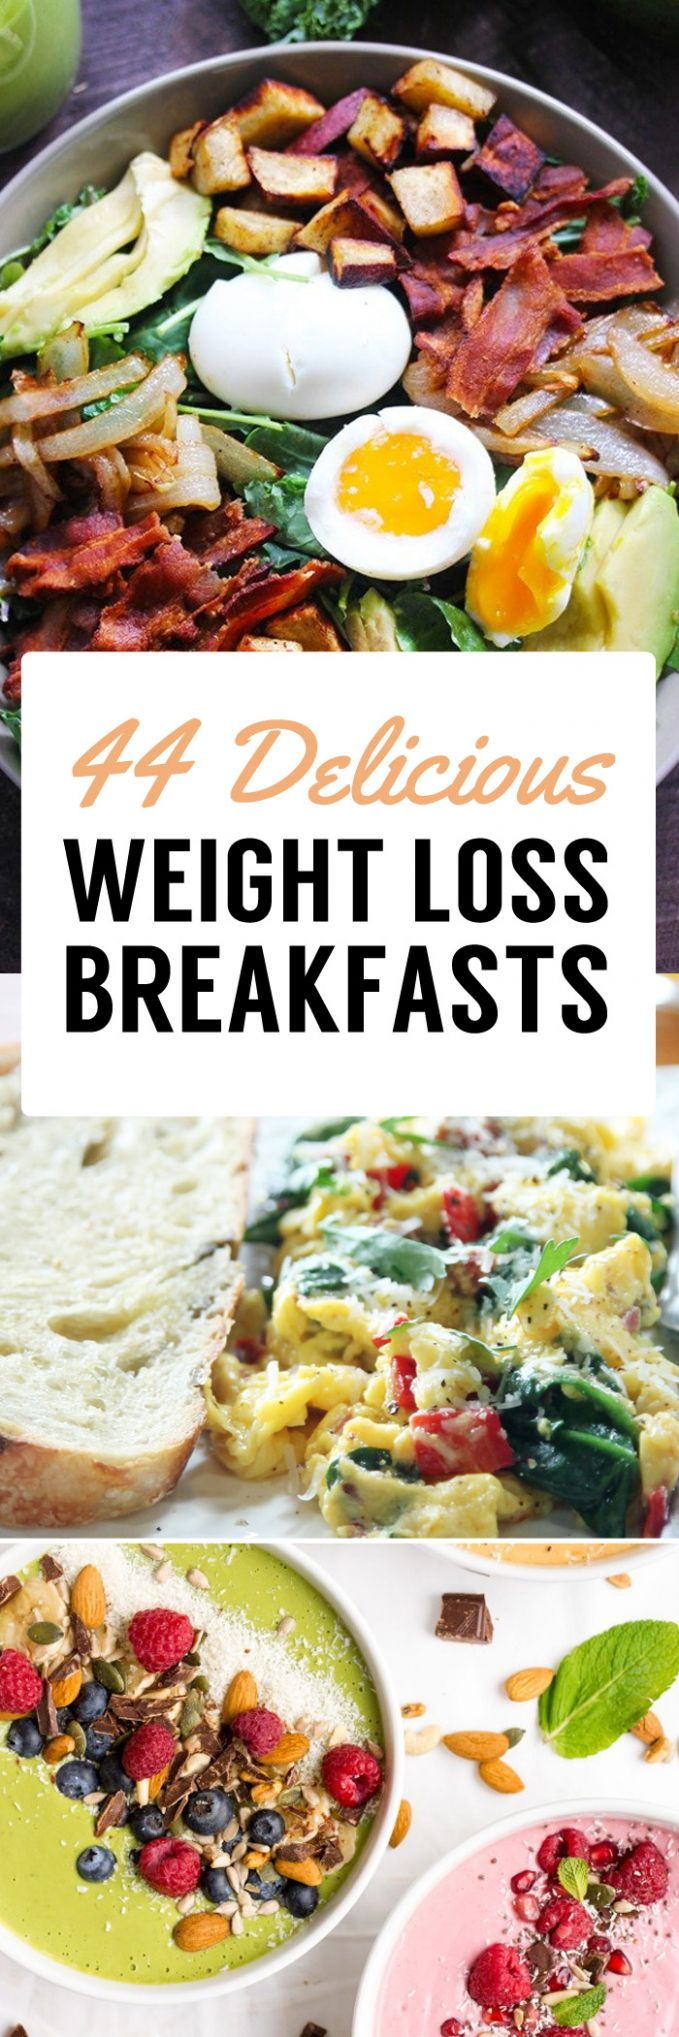 11 Weight Loss Breakfast Recipes To Jumpstart Your Fat Burning Day ...